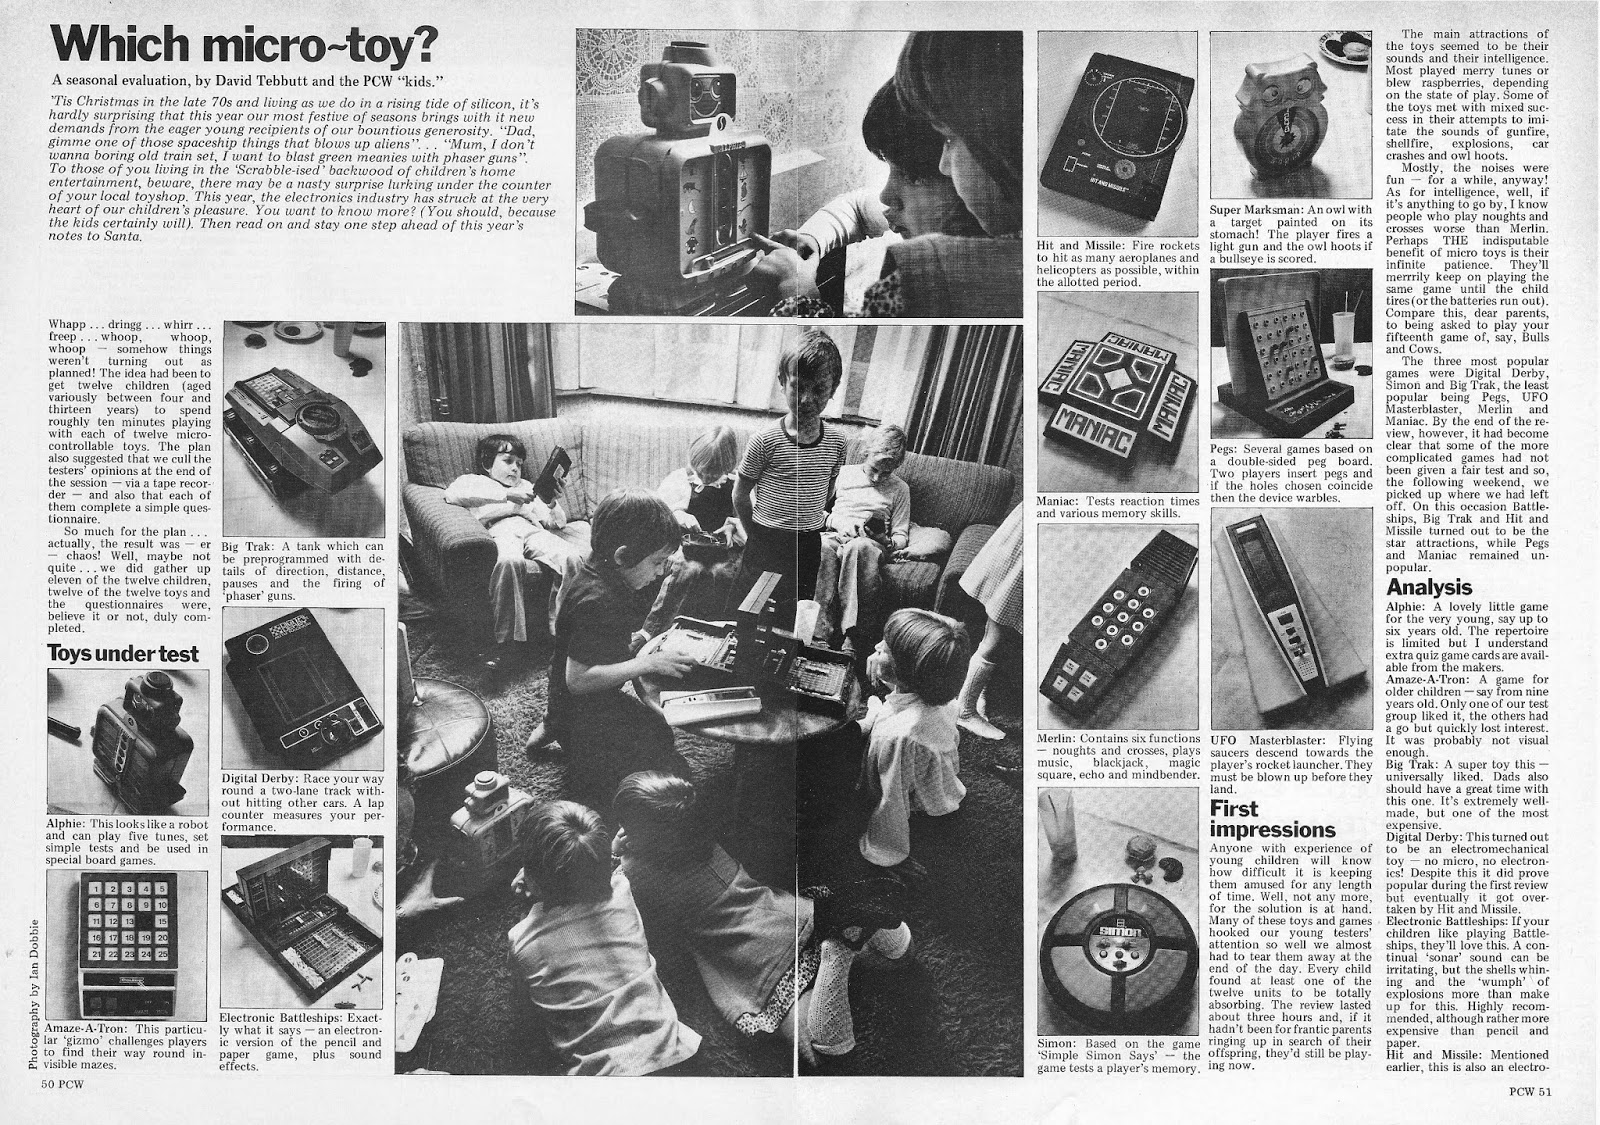 1979 PCW Christmas article on children's Electronic Toys and Games.